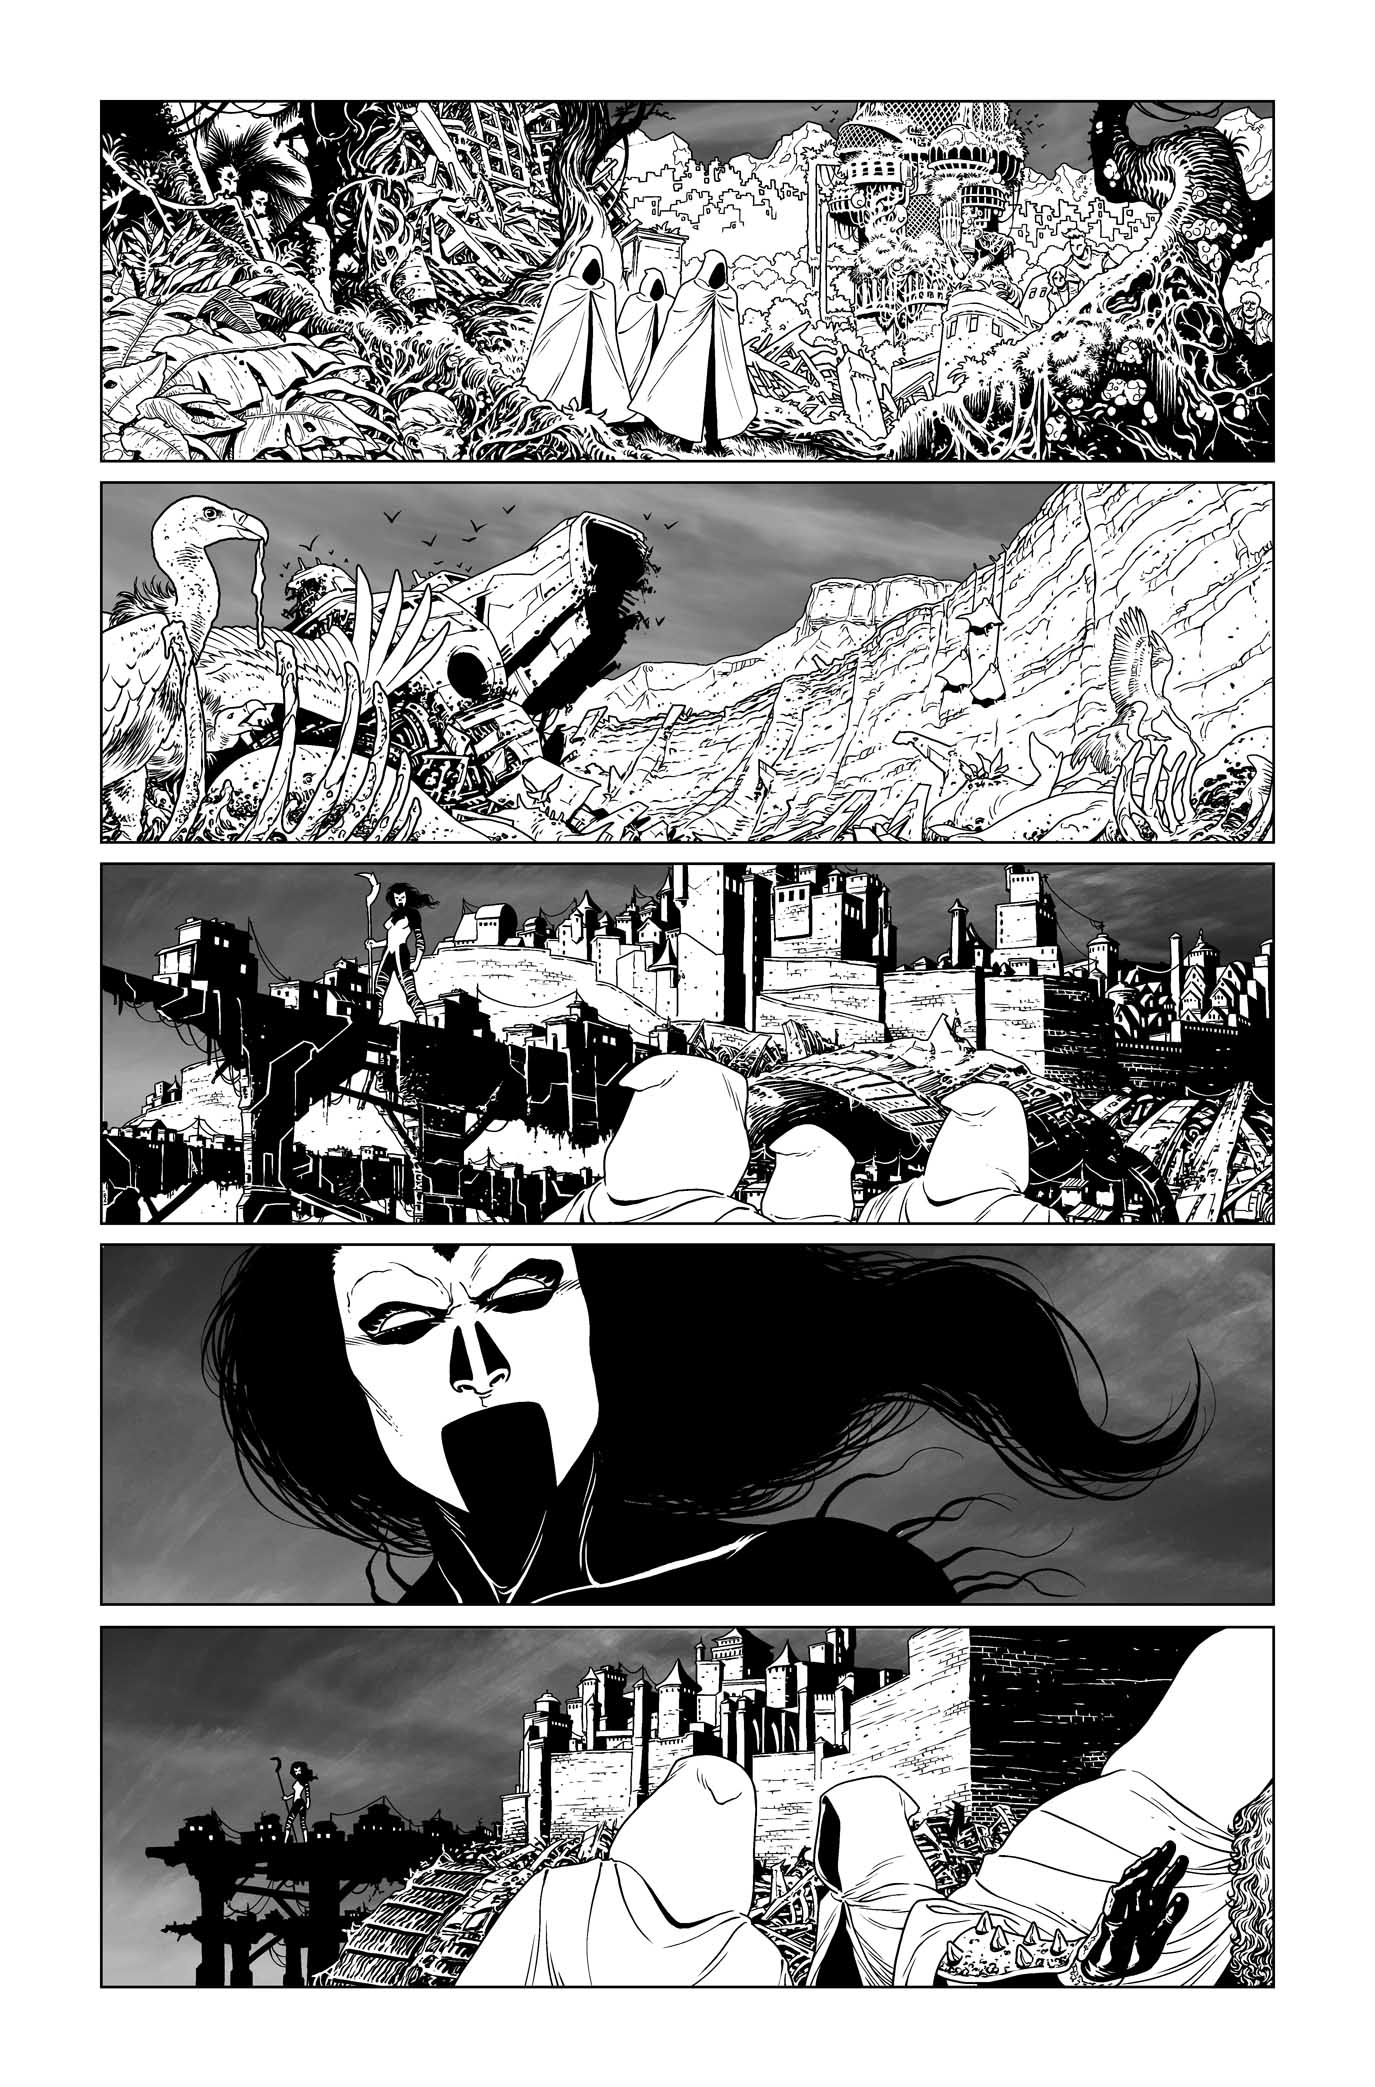 Rai - the history of the Valiant Universe p2